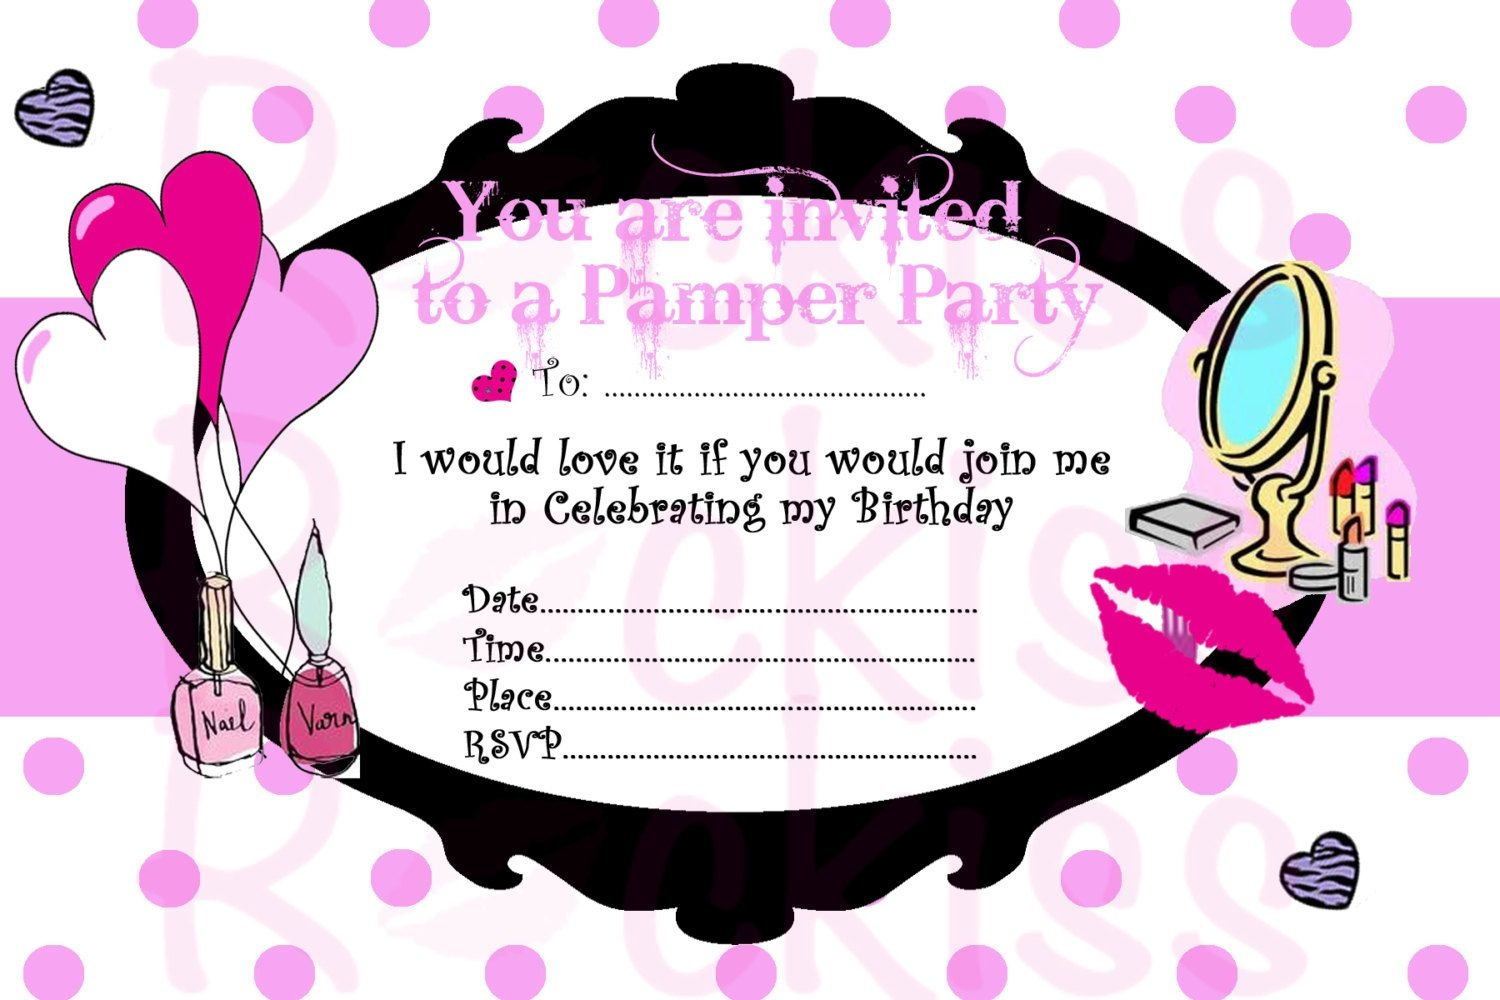 Pamper Party Invite Template - Tutlin.psstech.co - Free Printable Spa Party Invitations Templates